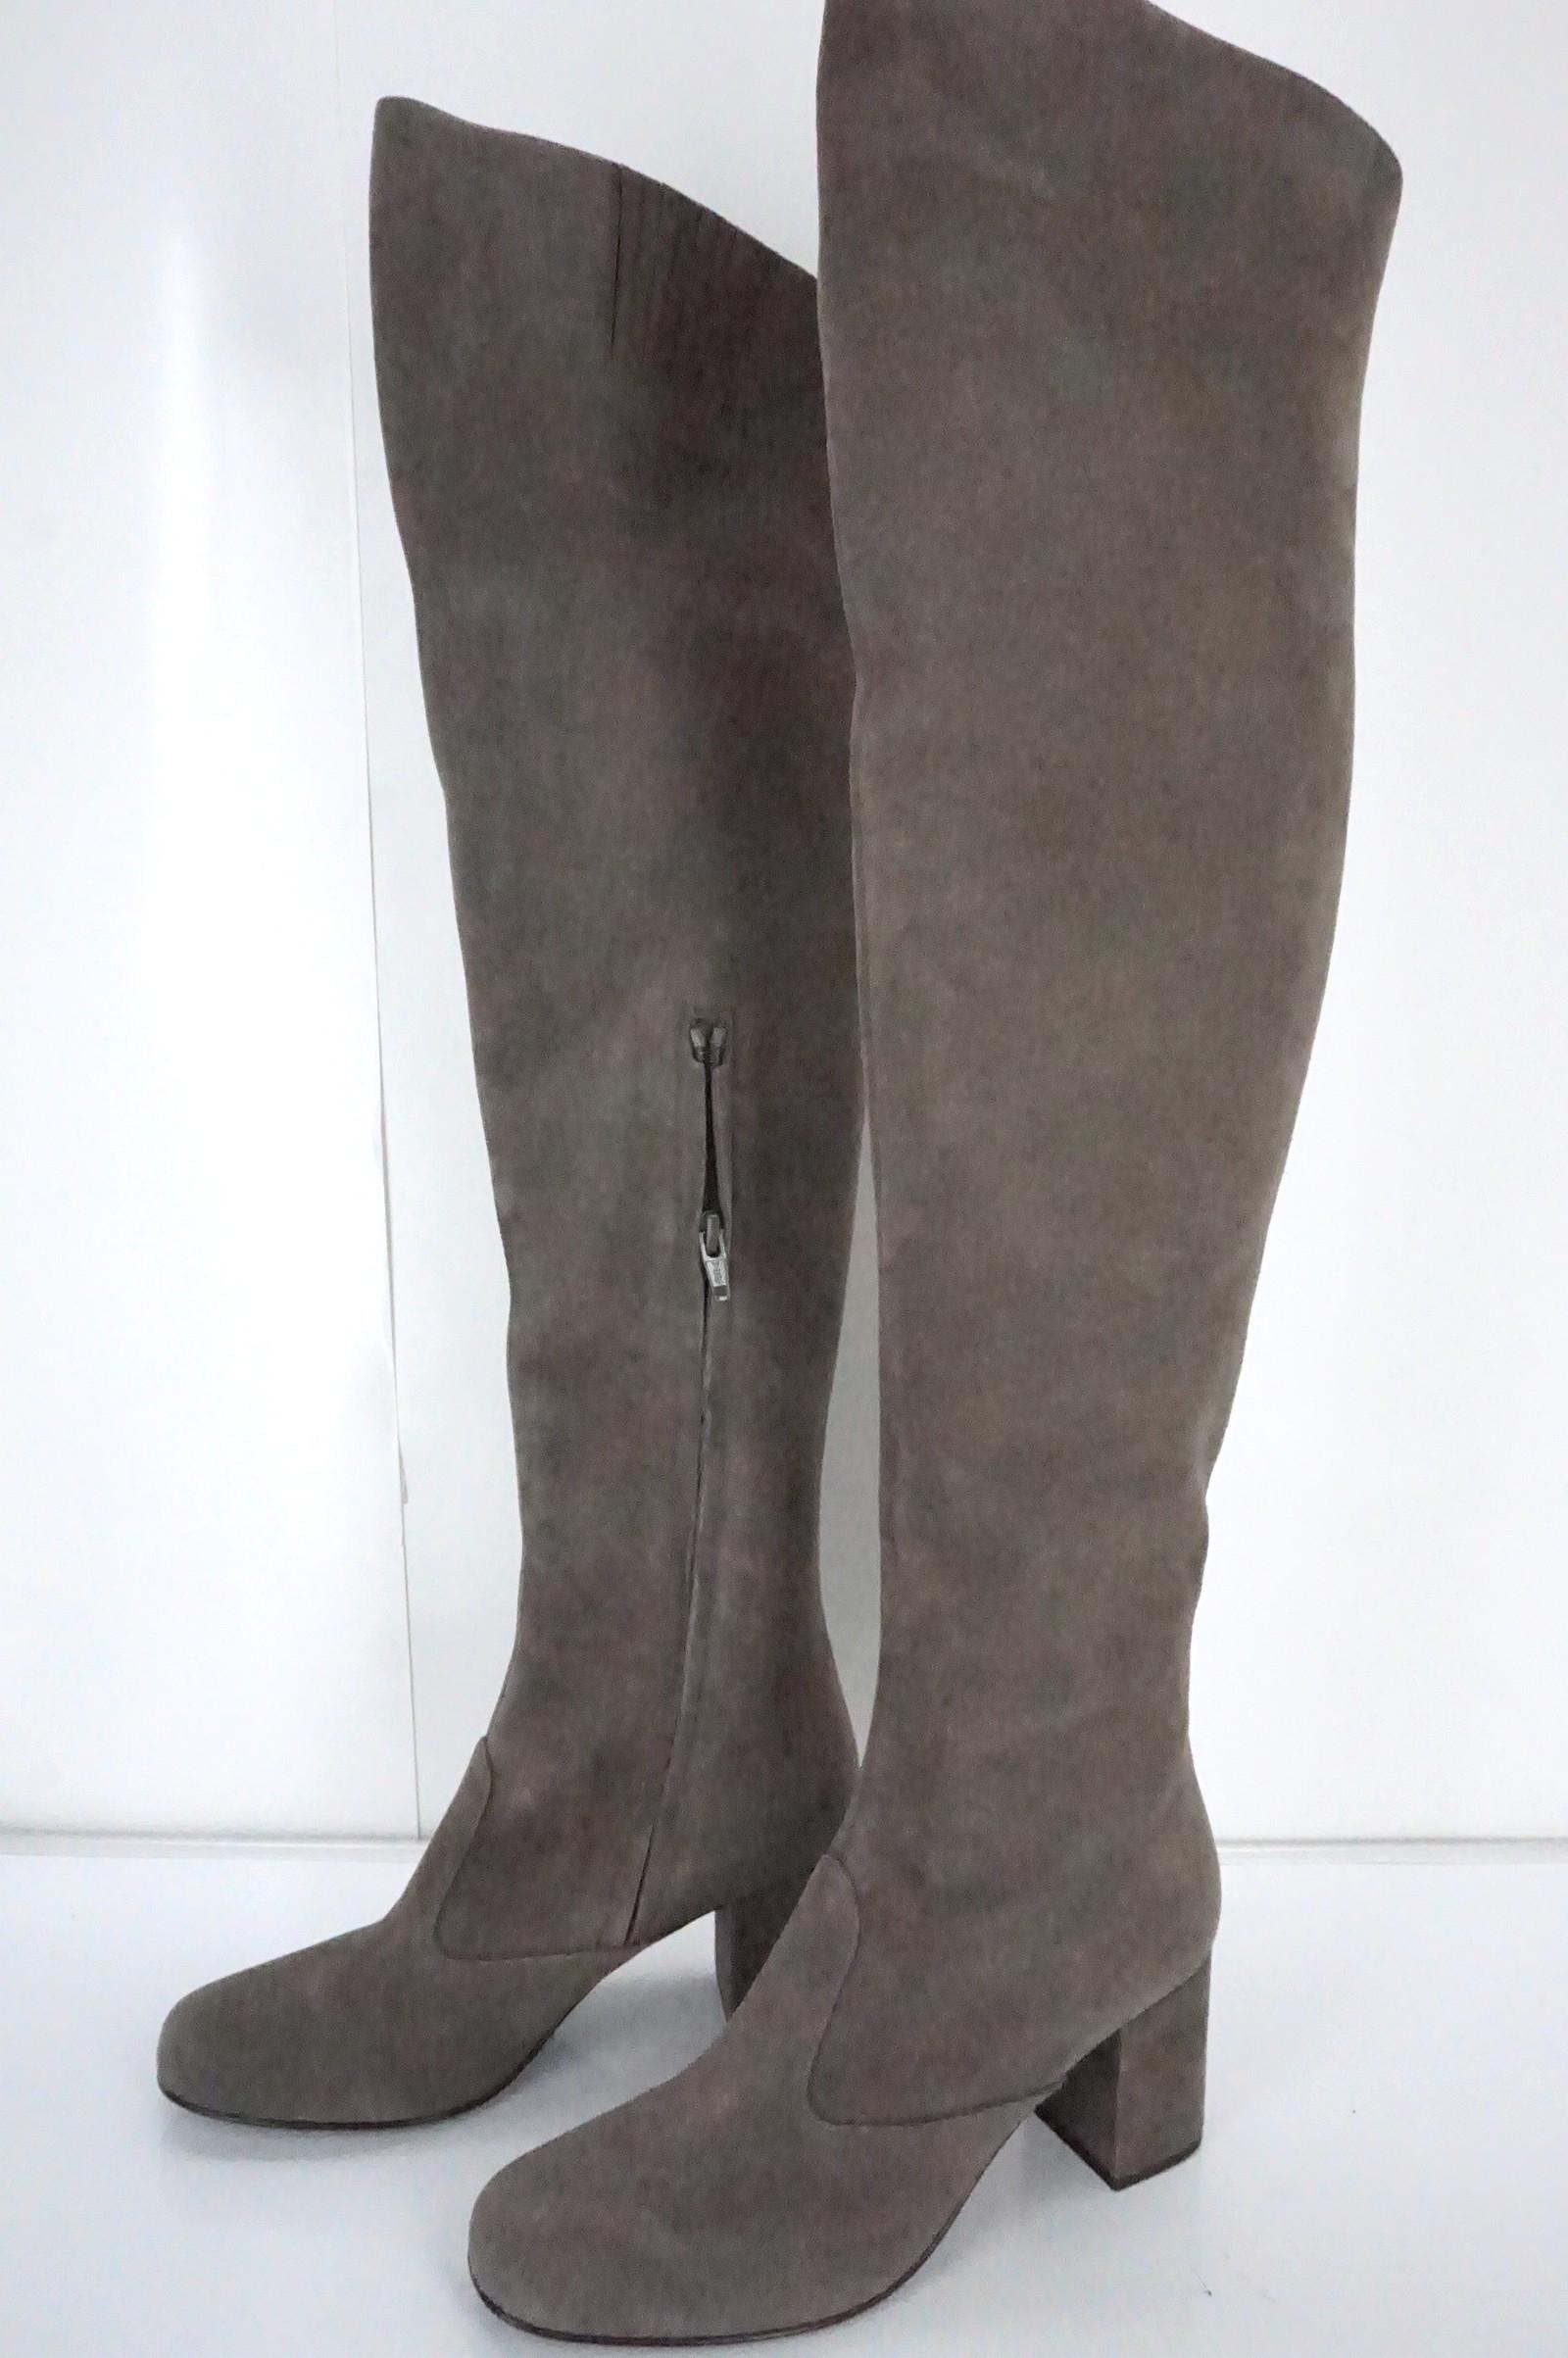 9a4b7f6cfc0 ... Saint Laurent Gray Suede Babies Over The The The Knee Thigh High Boots Booties  Size